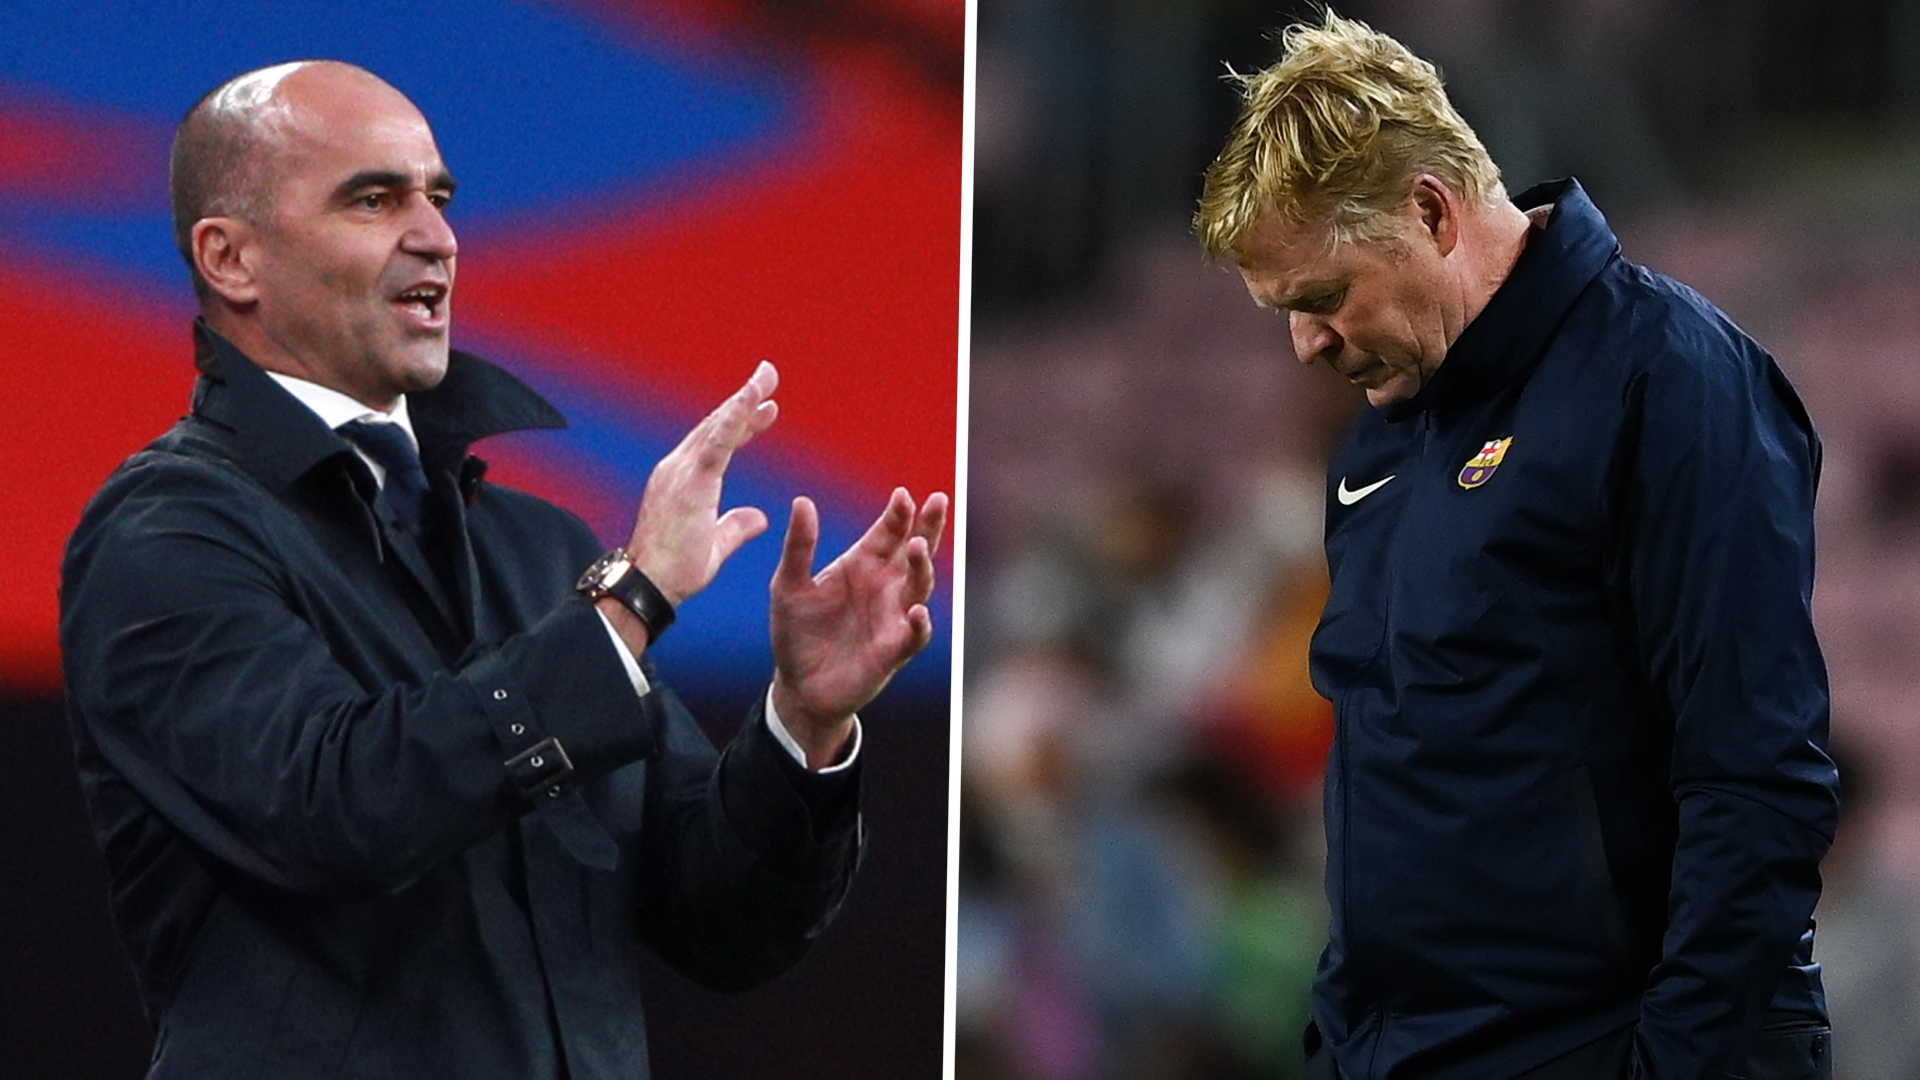 Barcelona look for best moment to sack Koeman and make Martinez a priority to become coach